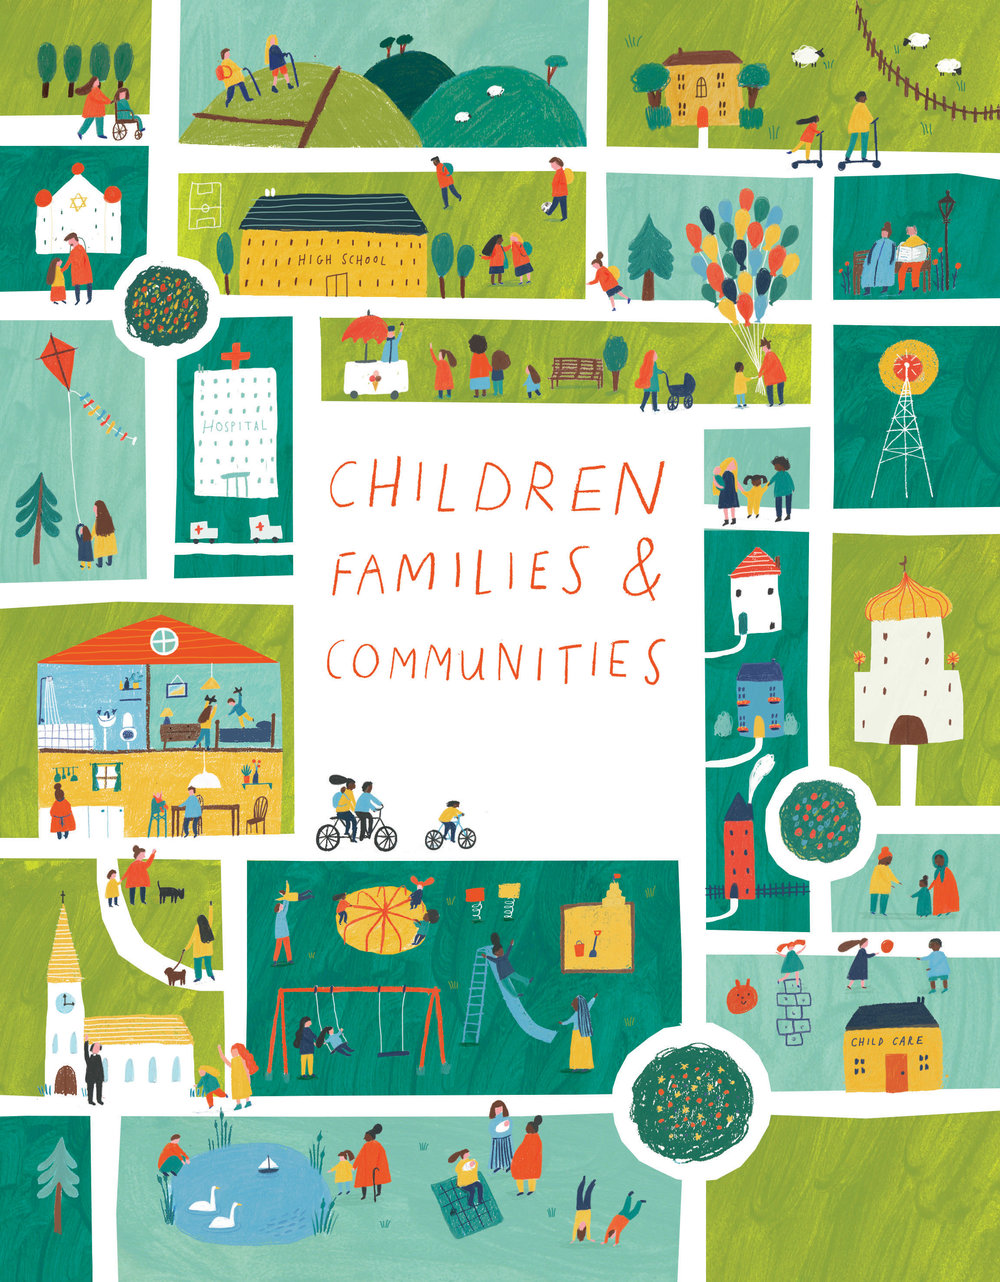 Hannah Tolson - OUP - Children, Families & Communities (RGB).jpg